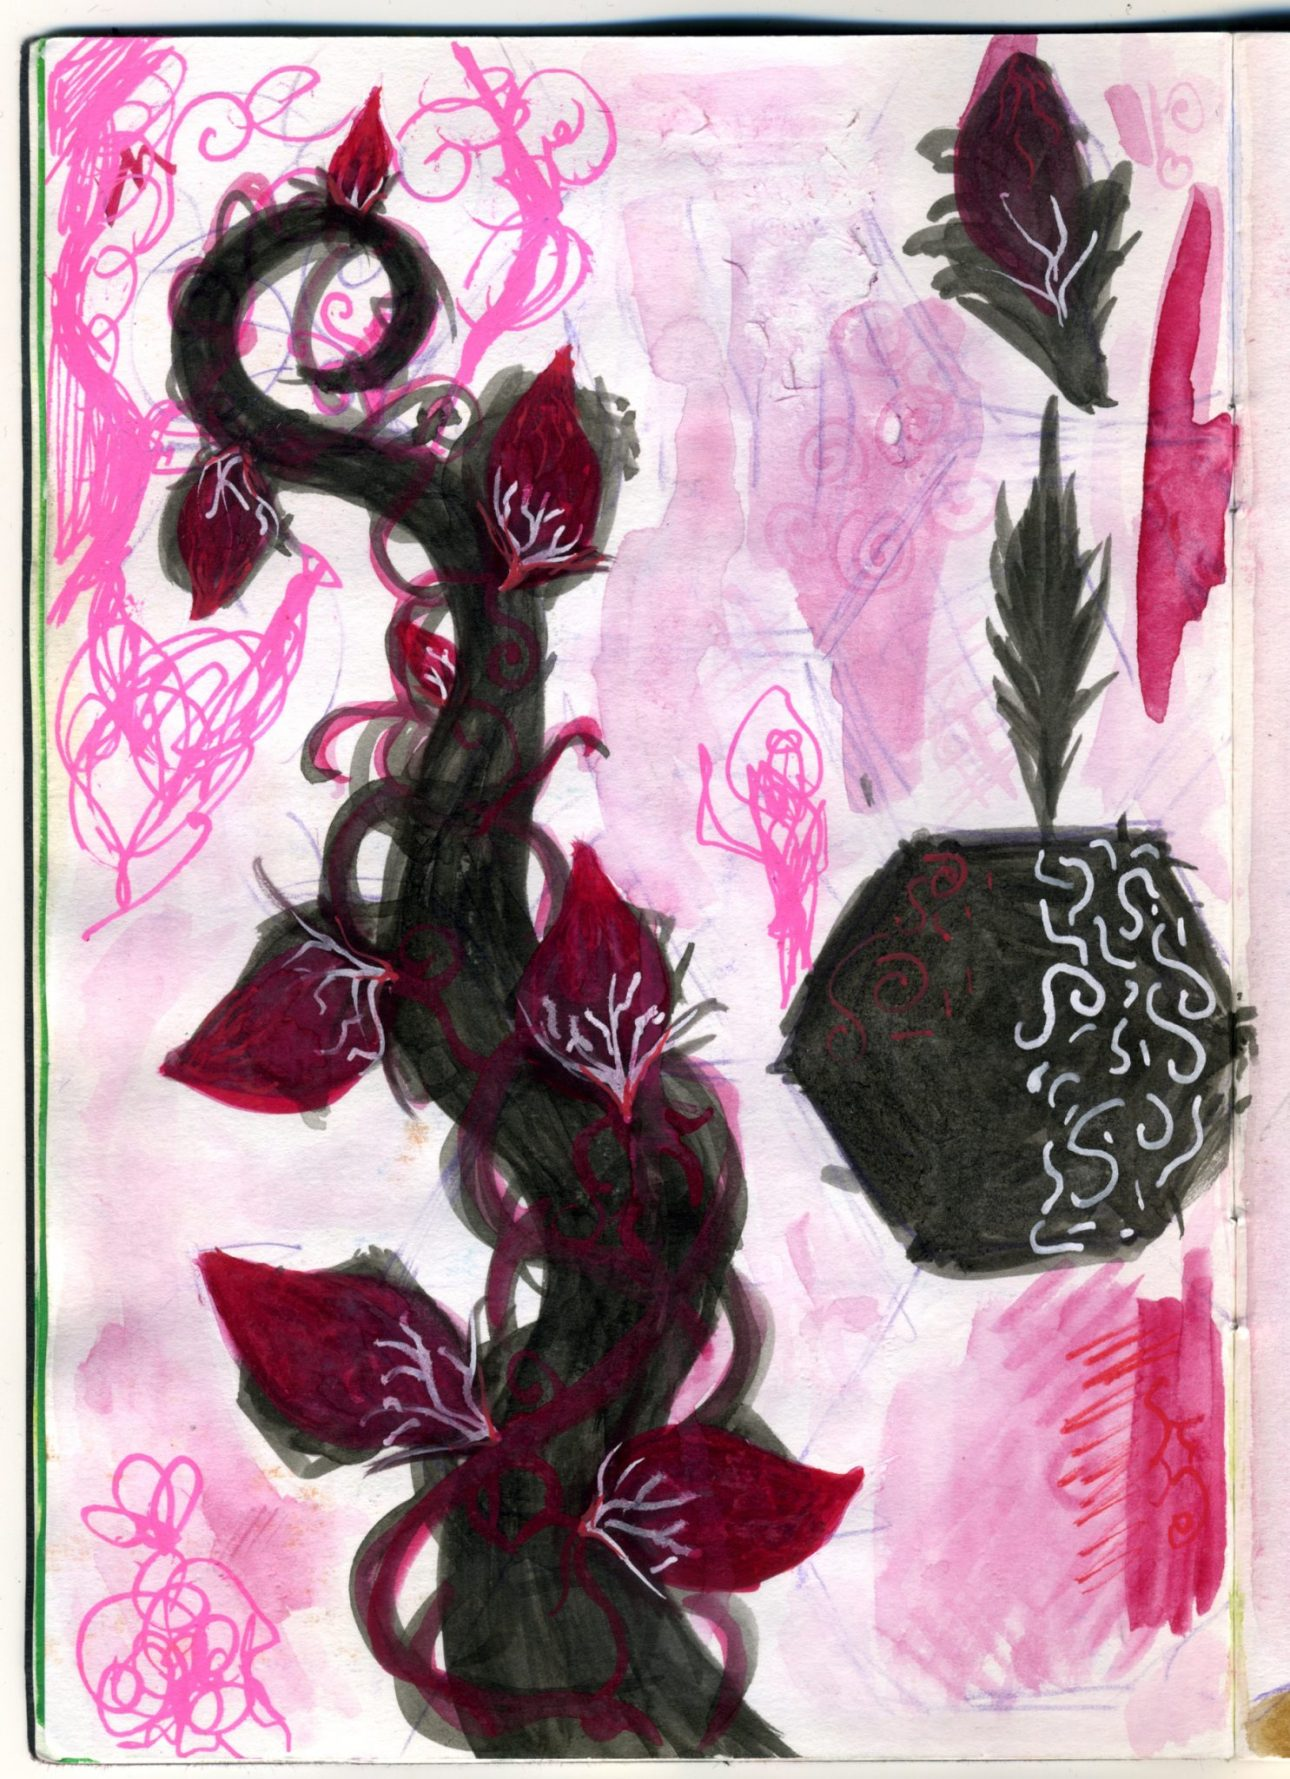 A watercolour sketch of a darker version of the Jack and the Beanstalk style beanstalk.